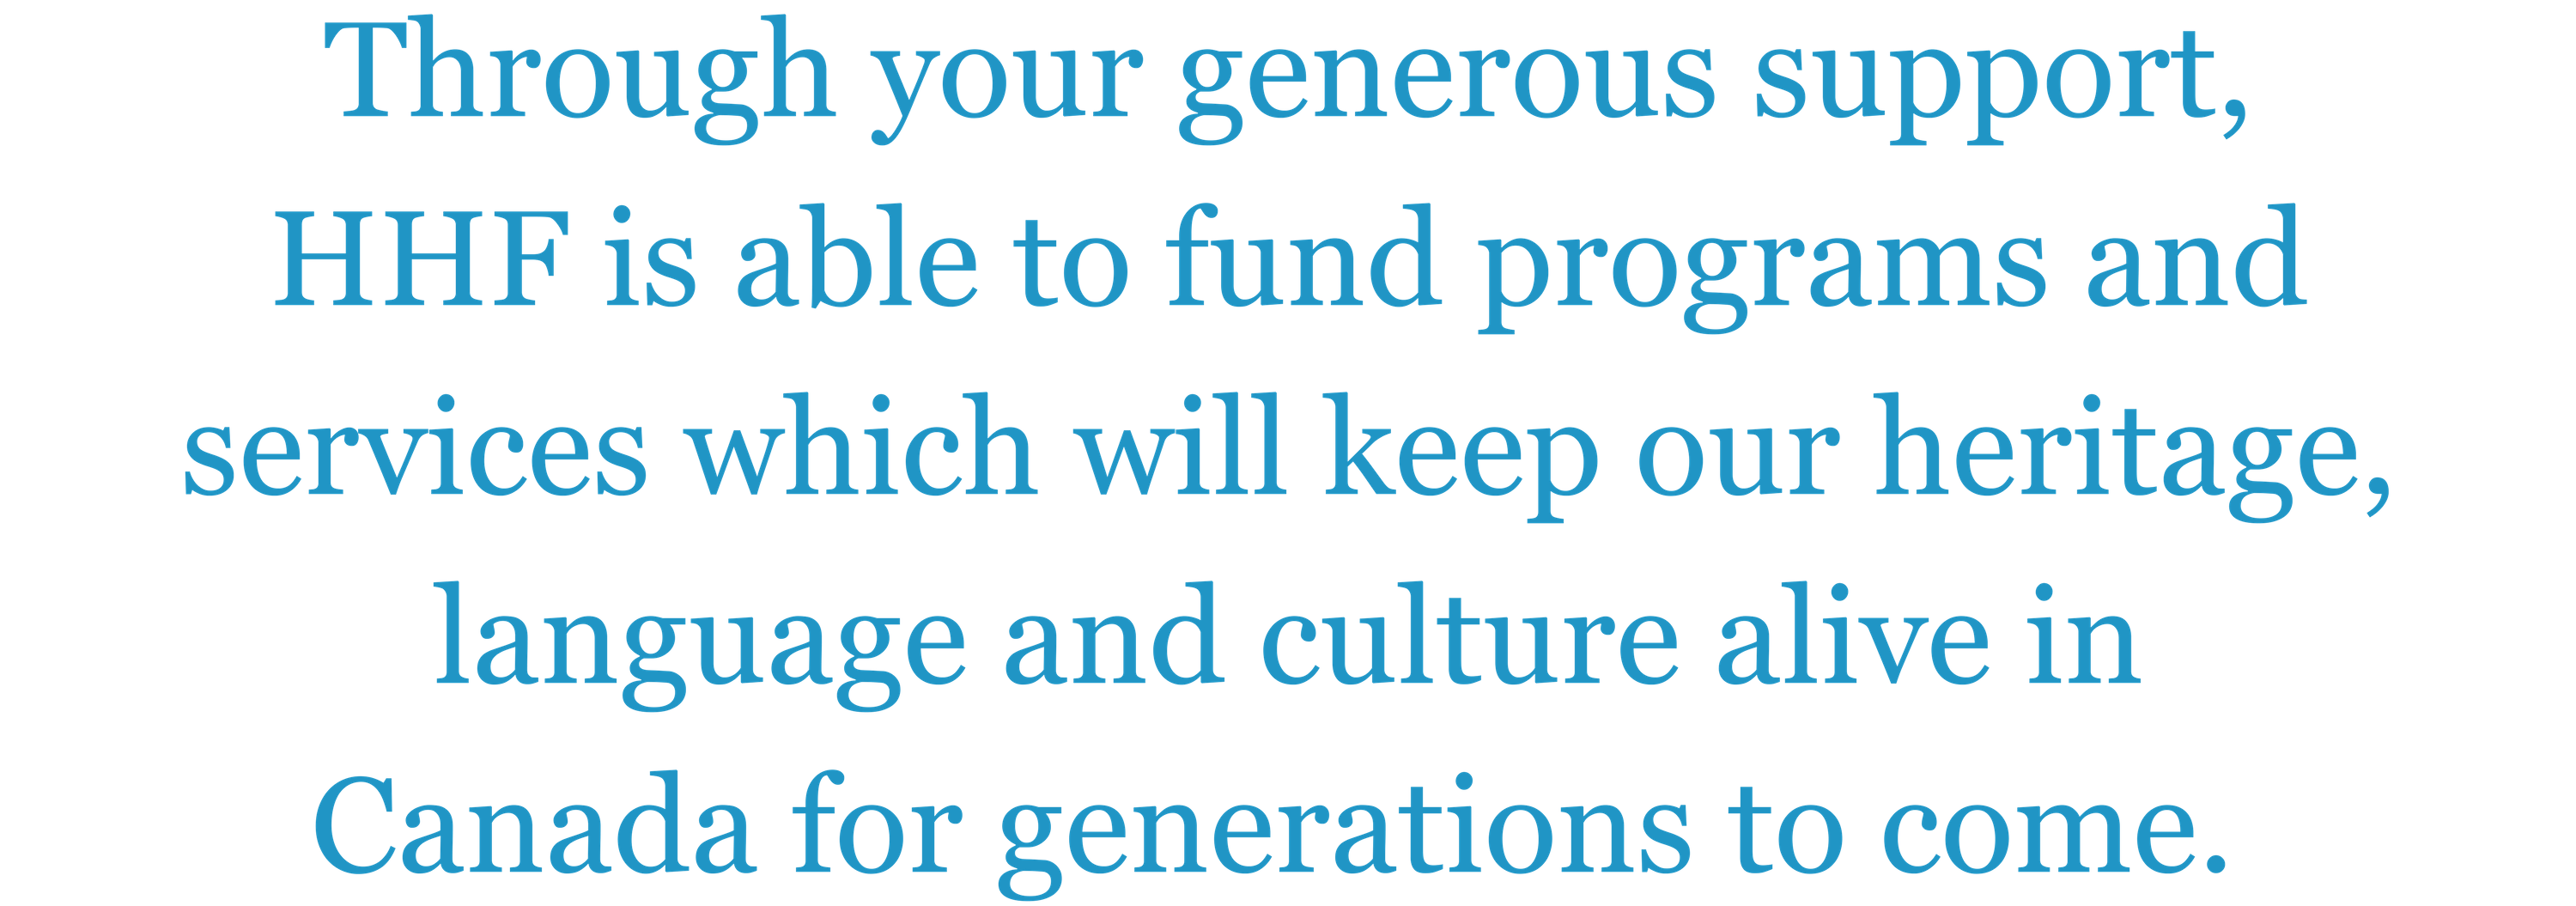 HHF donate text